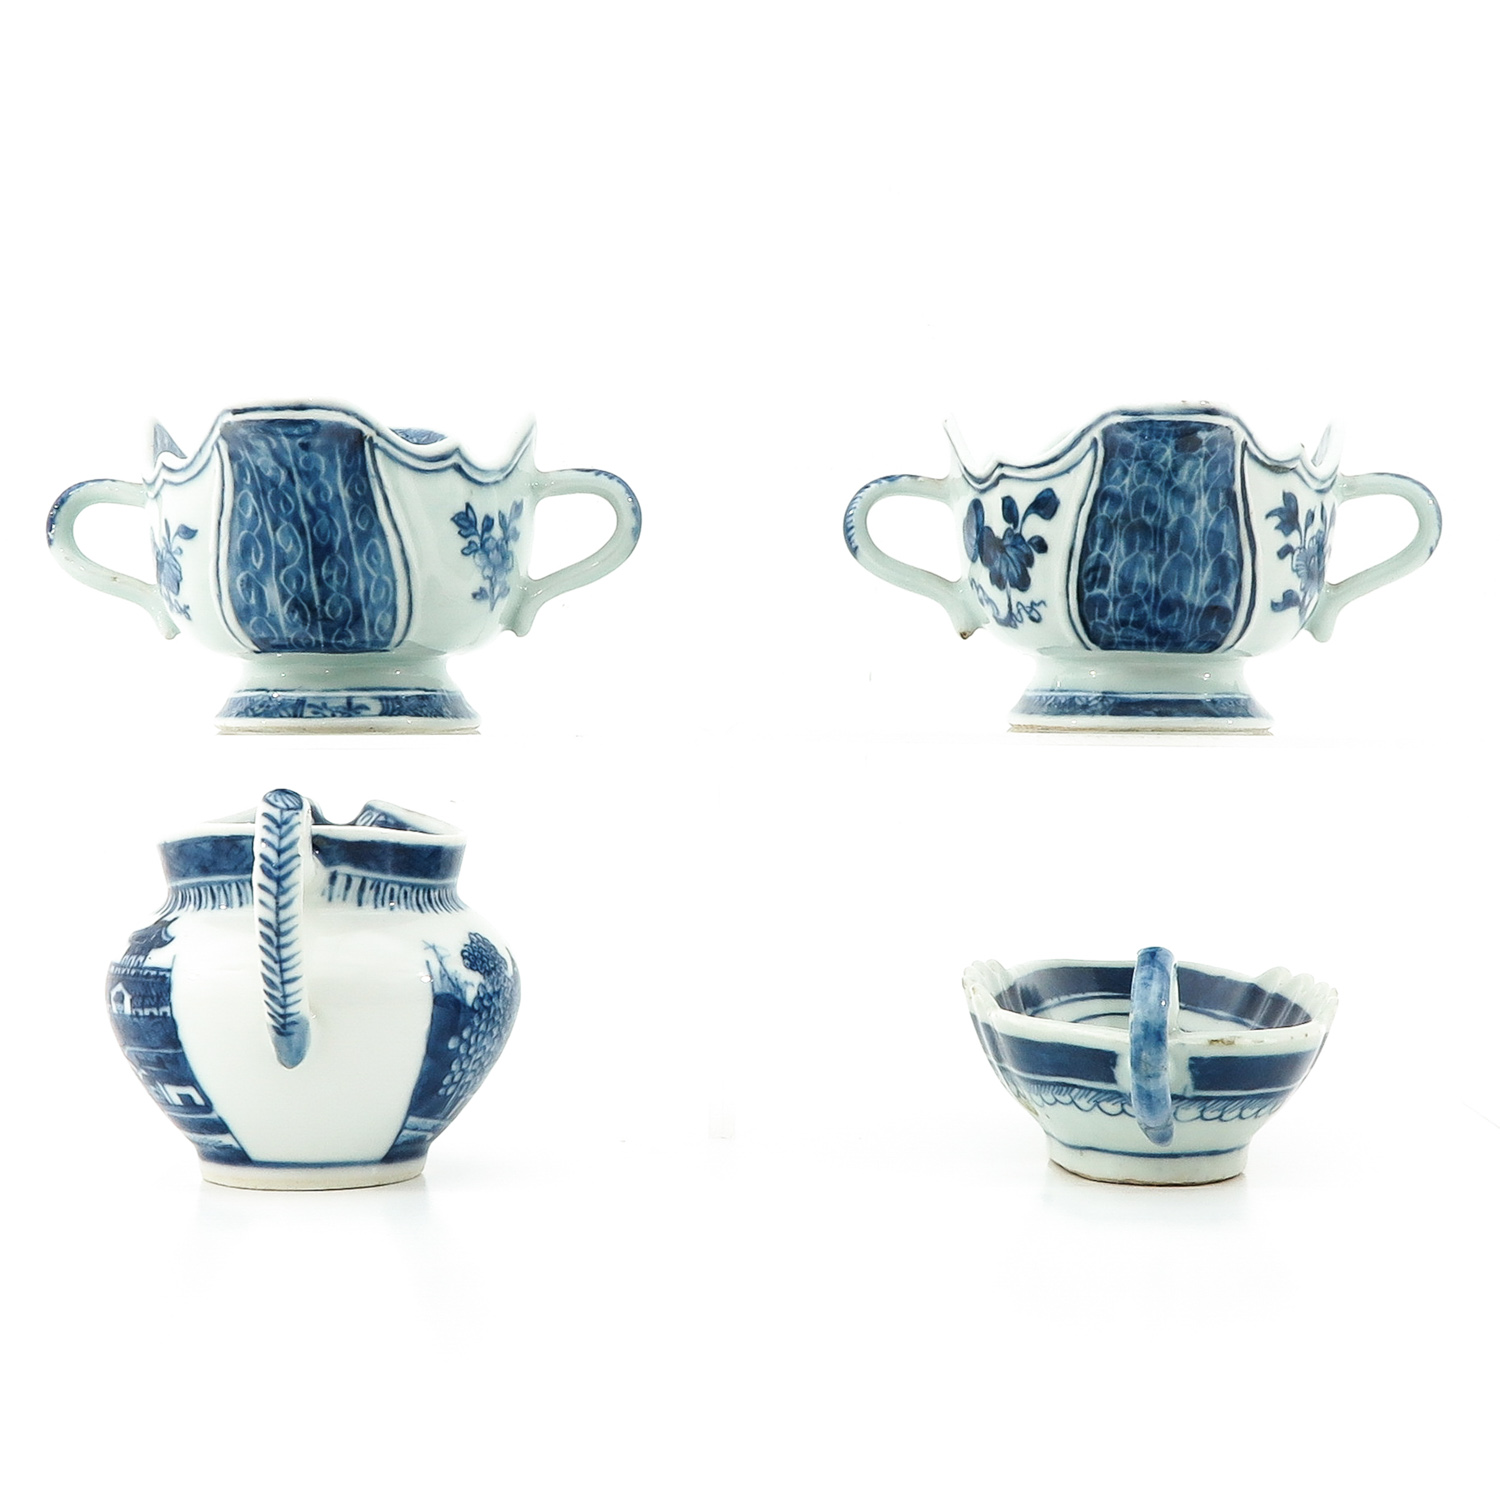 A Collection of Porcelain - Image 2 of 10